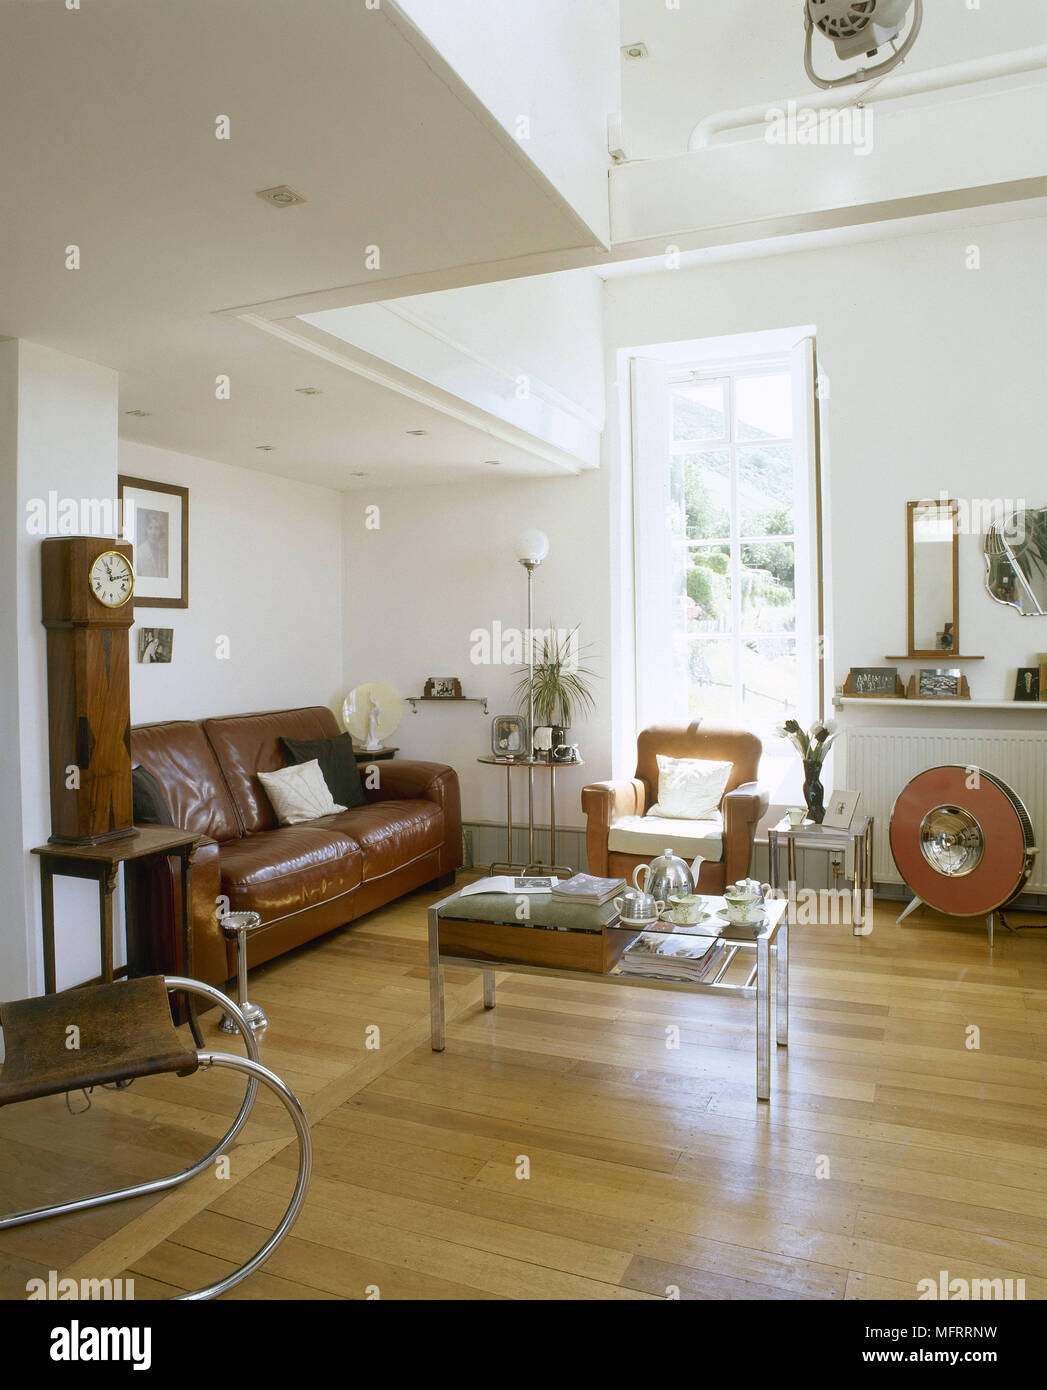 A Modern Sitting Room With Retro Styling Wood Floor Leather Sofa